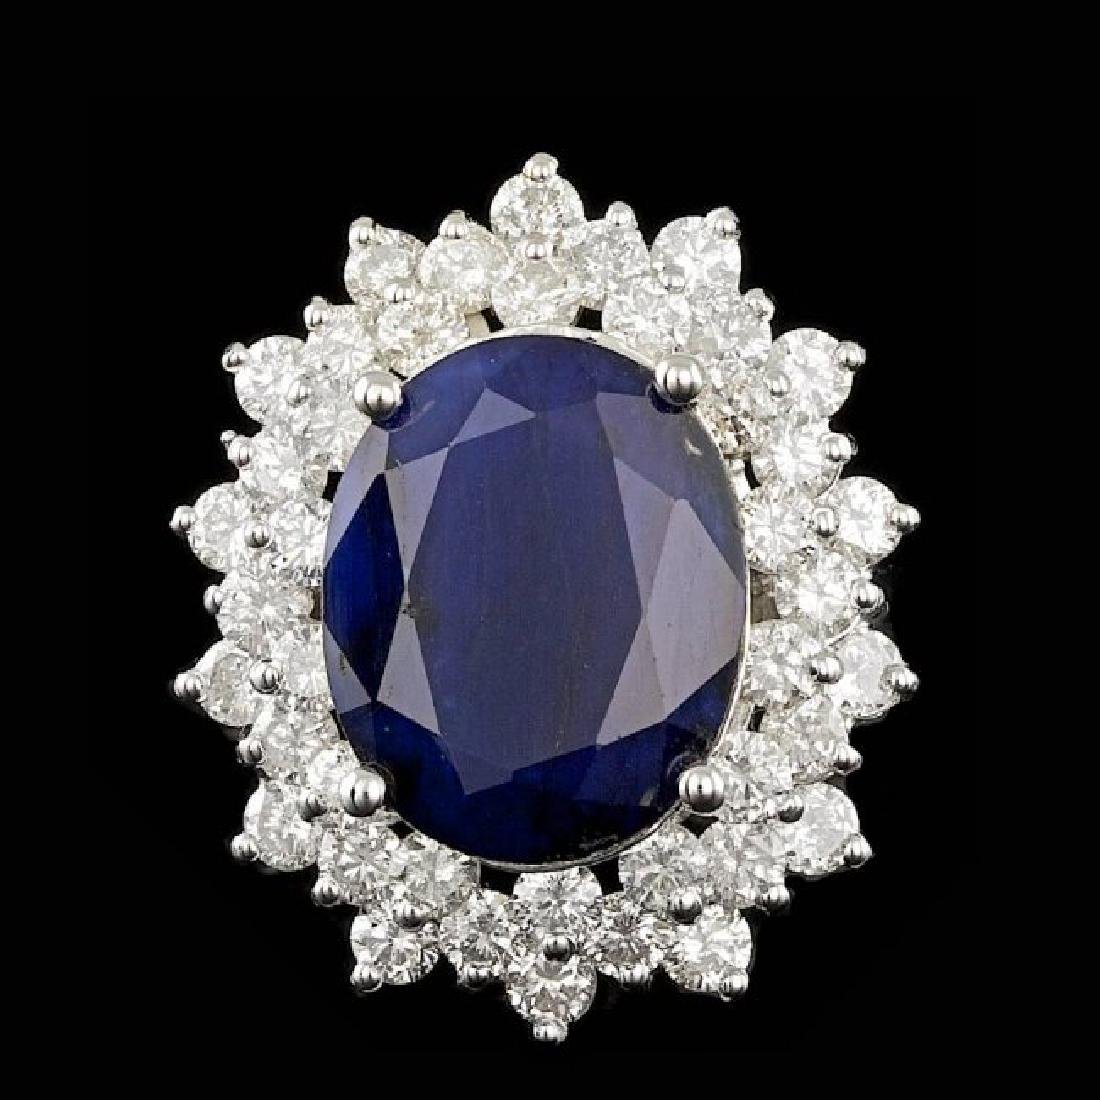 14k Gold 13.00ct Sapphire 3.00ct Diamond Ring